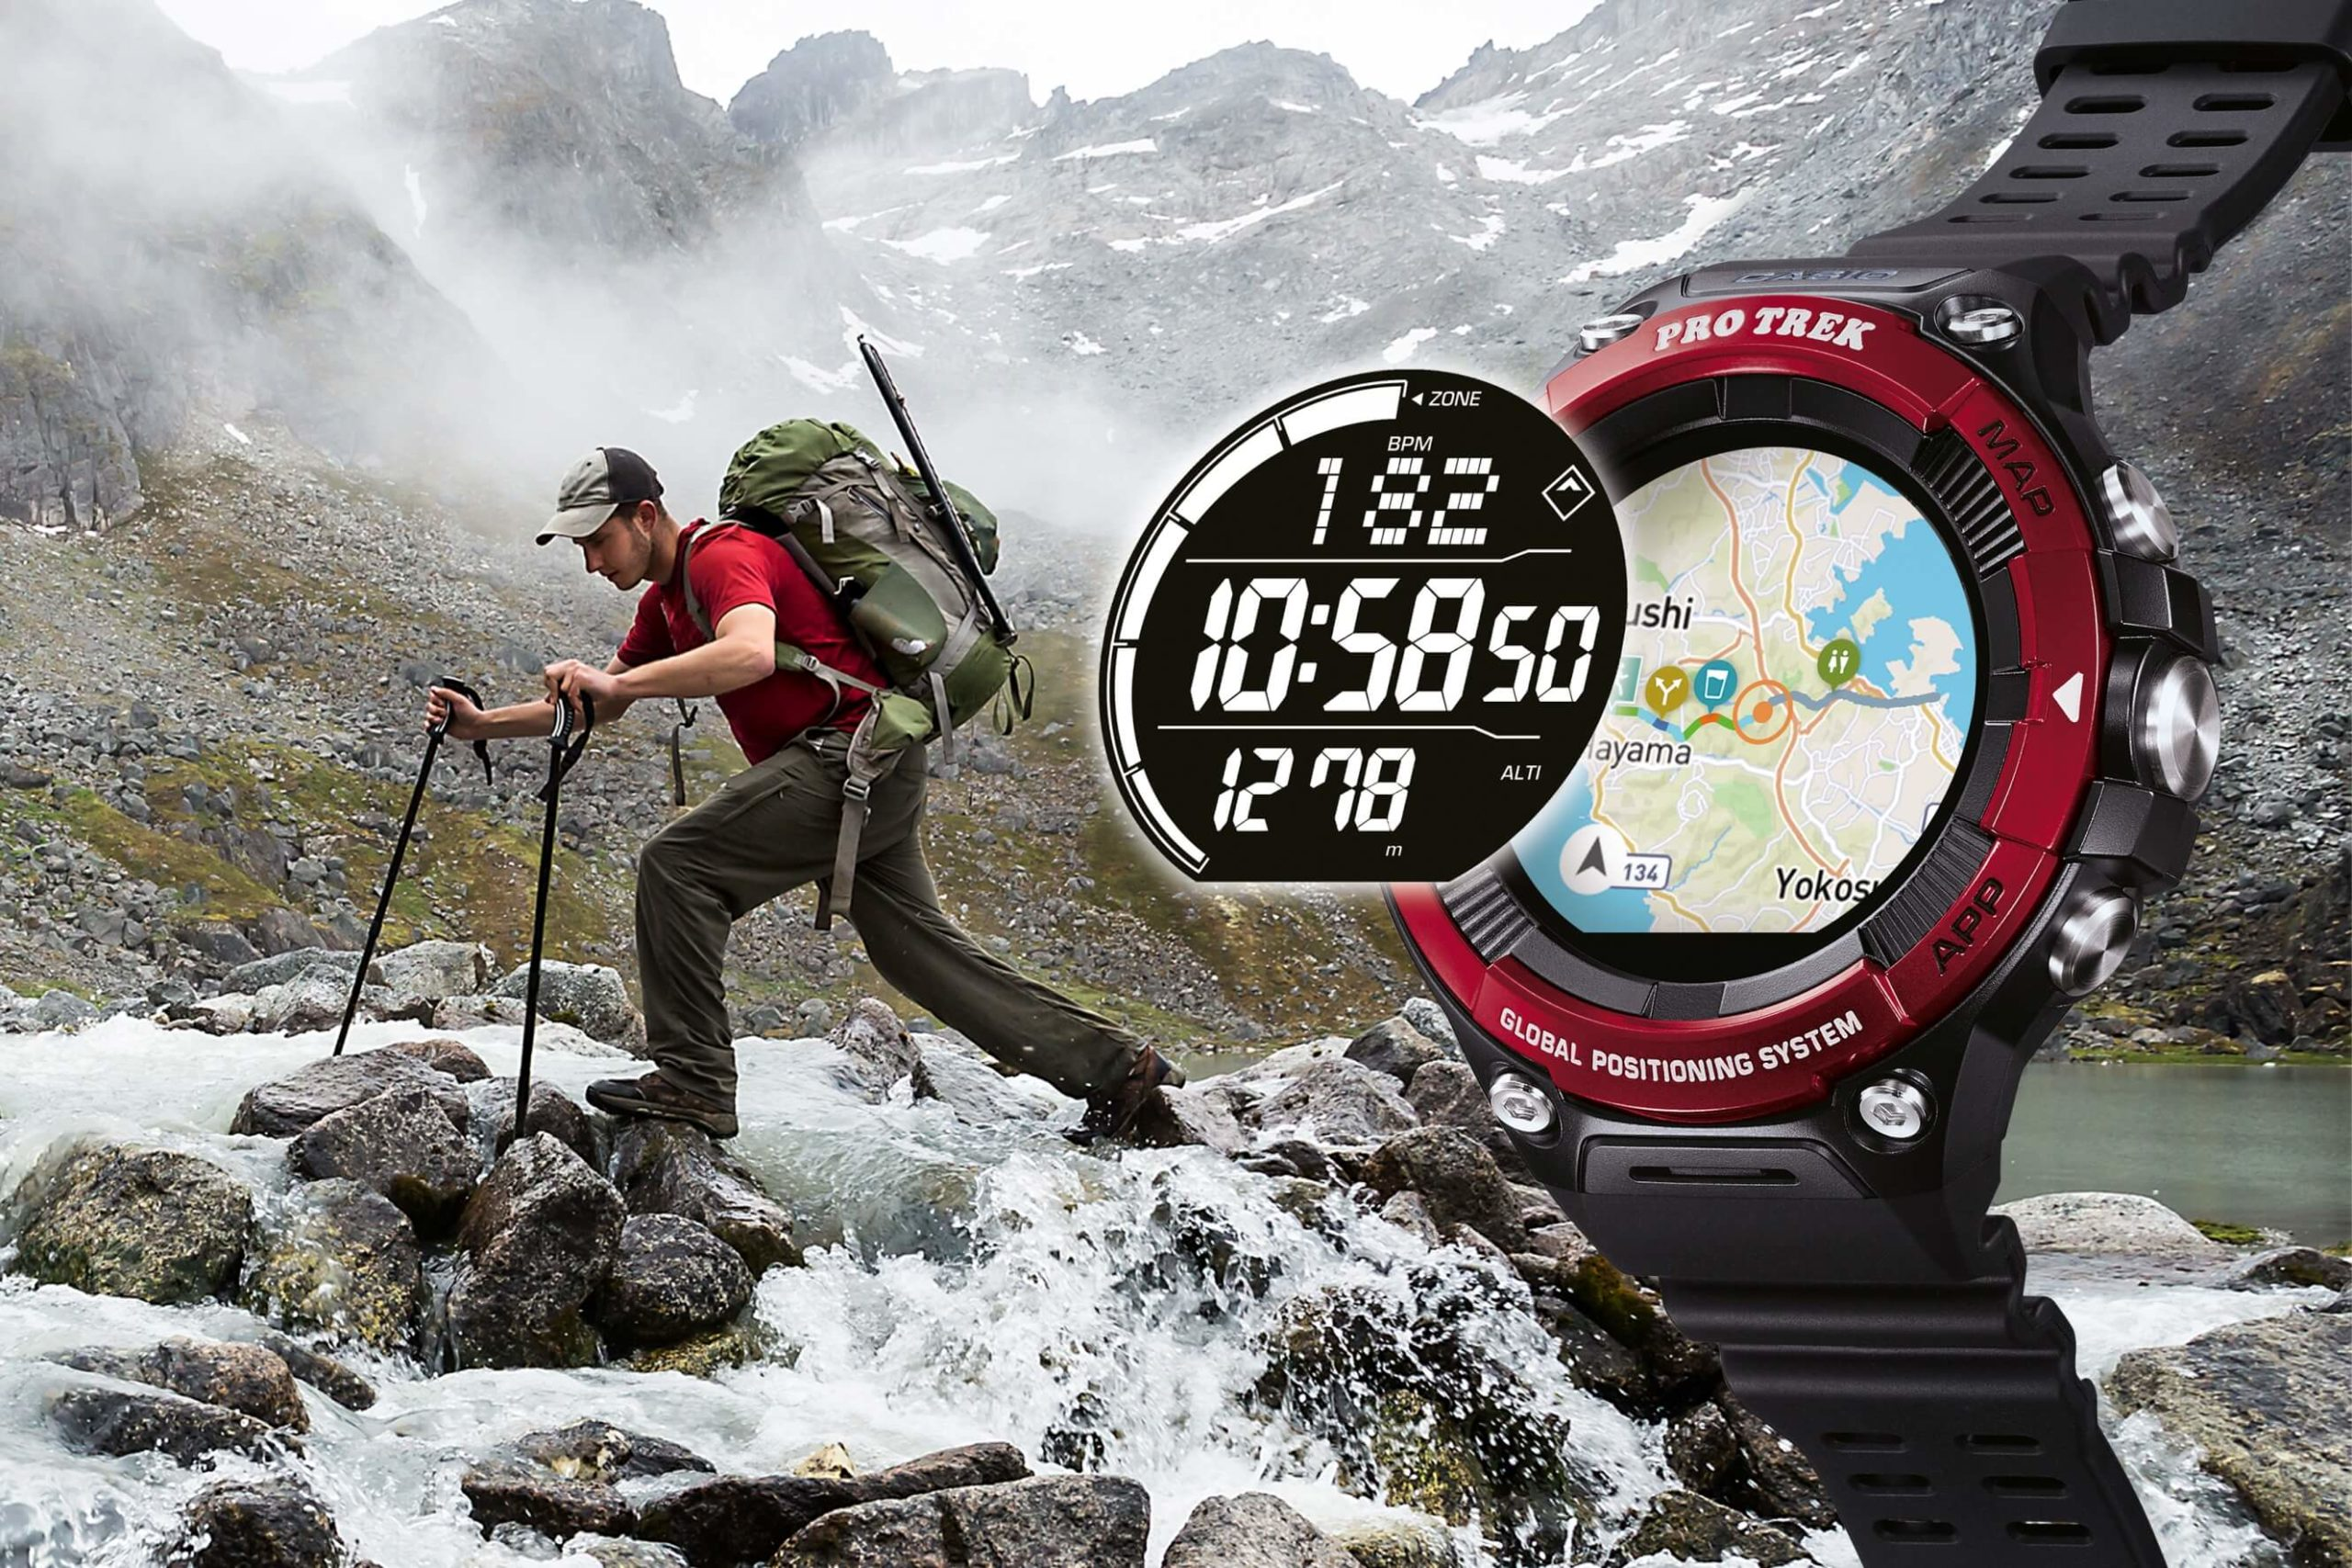 Tested by CAMPZ - Casio Pro Trek Smartwatch